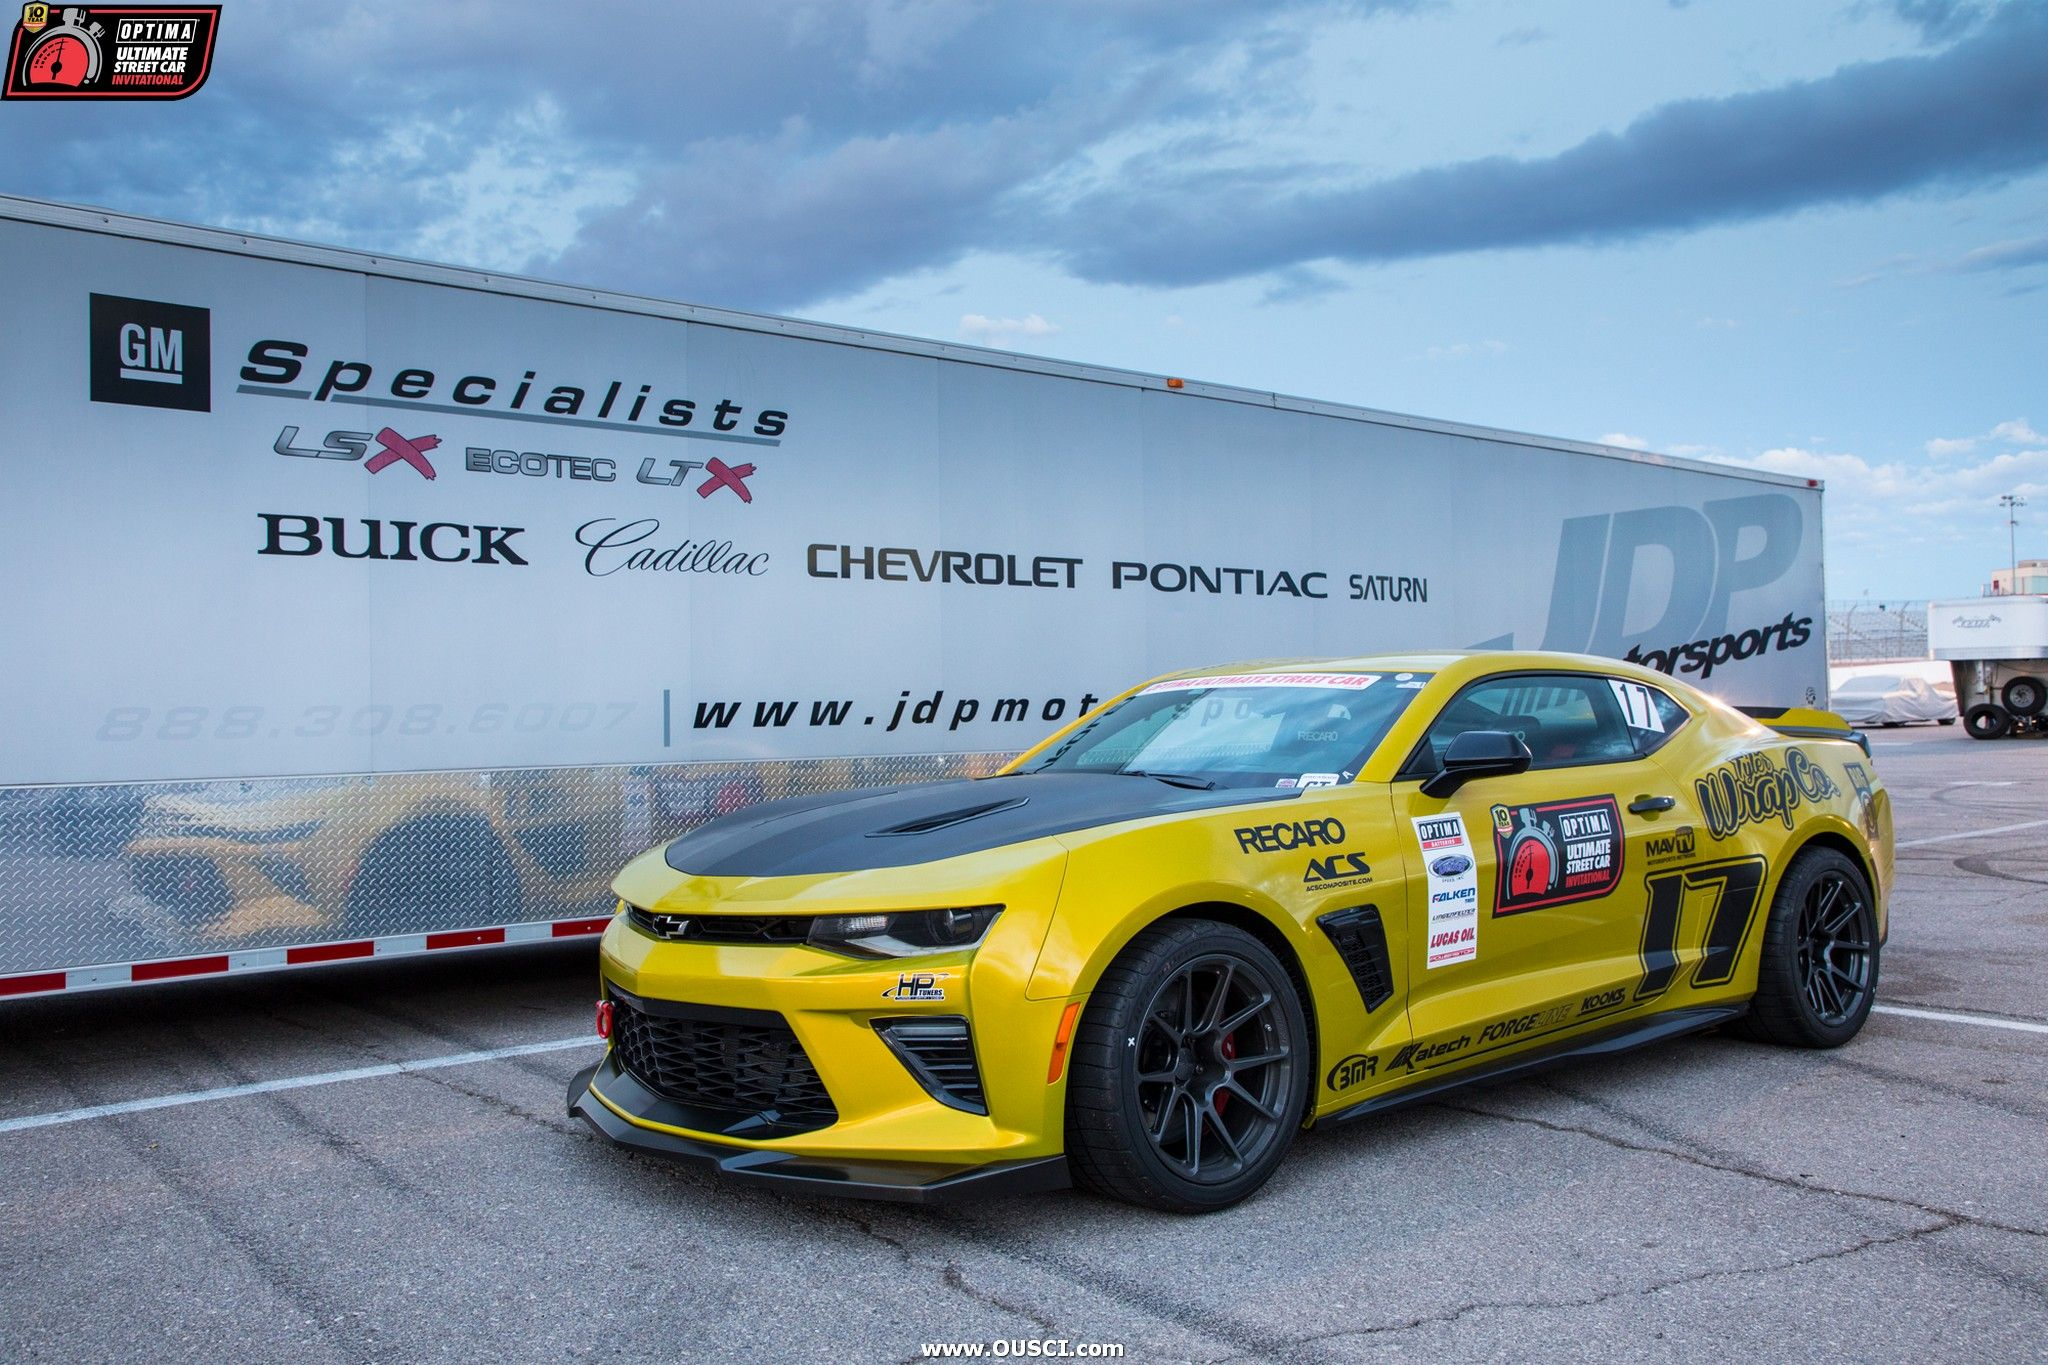 Chad Langley S 2017 Chevy Camaro At The Ousci